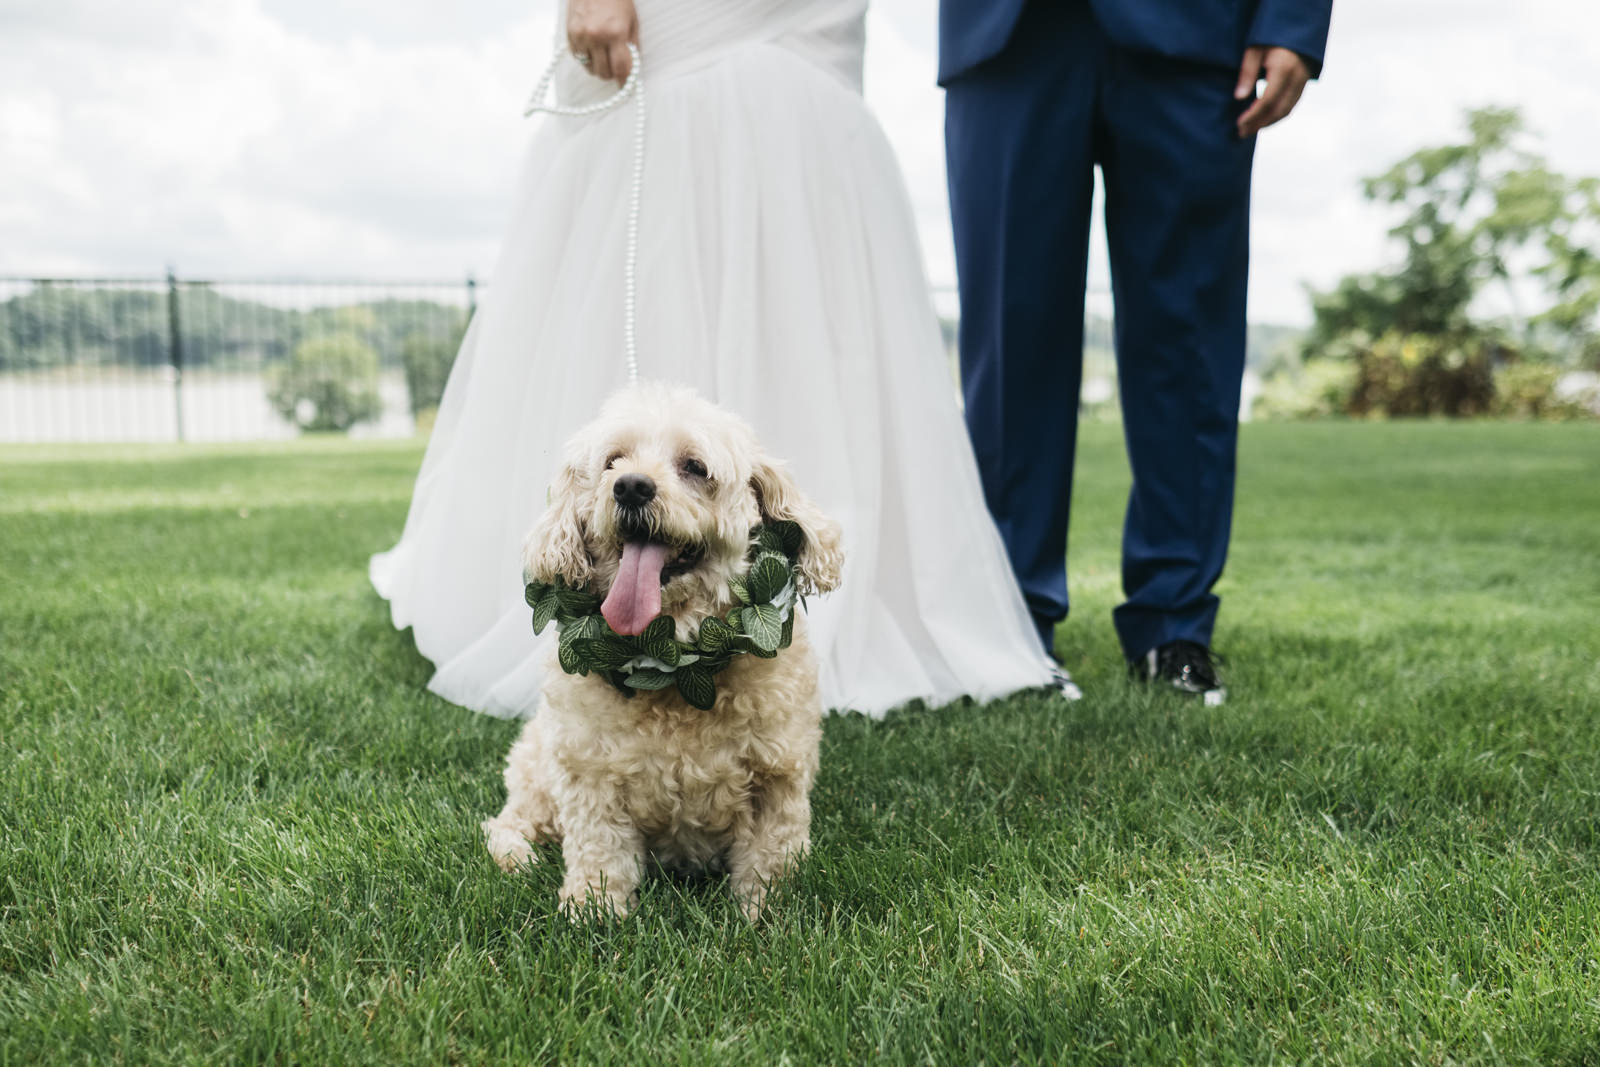 The bride and groom's dog even jumped in a for a few pictures during their creative session!